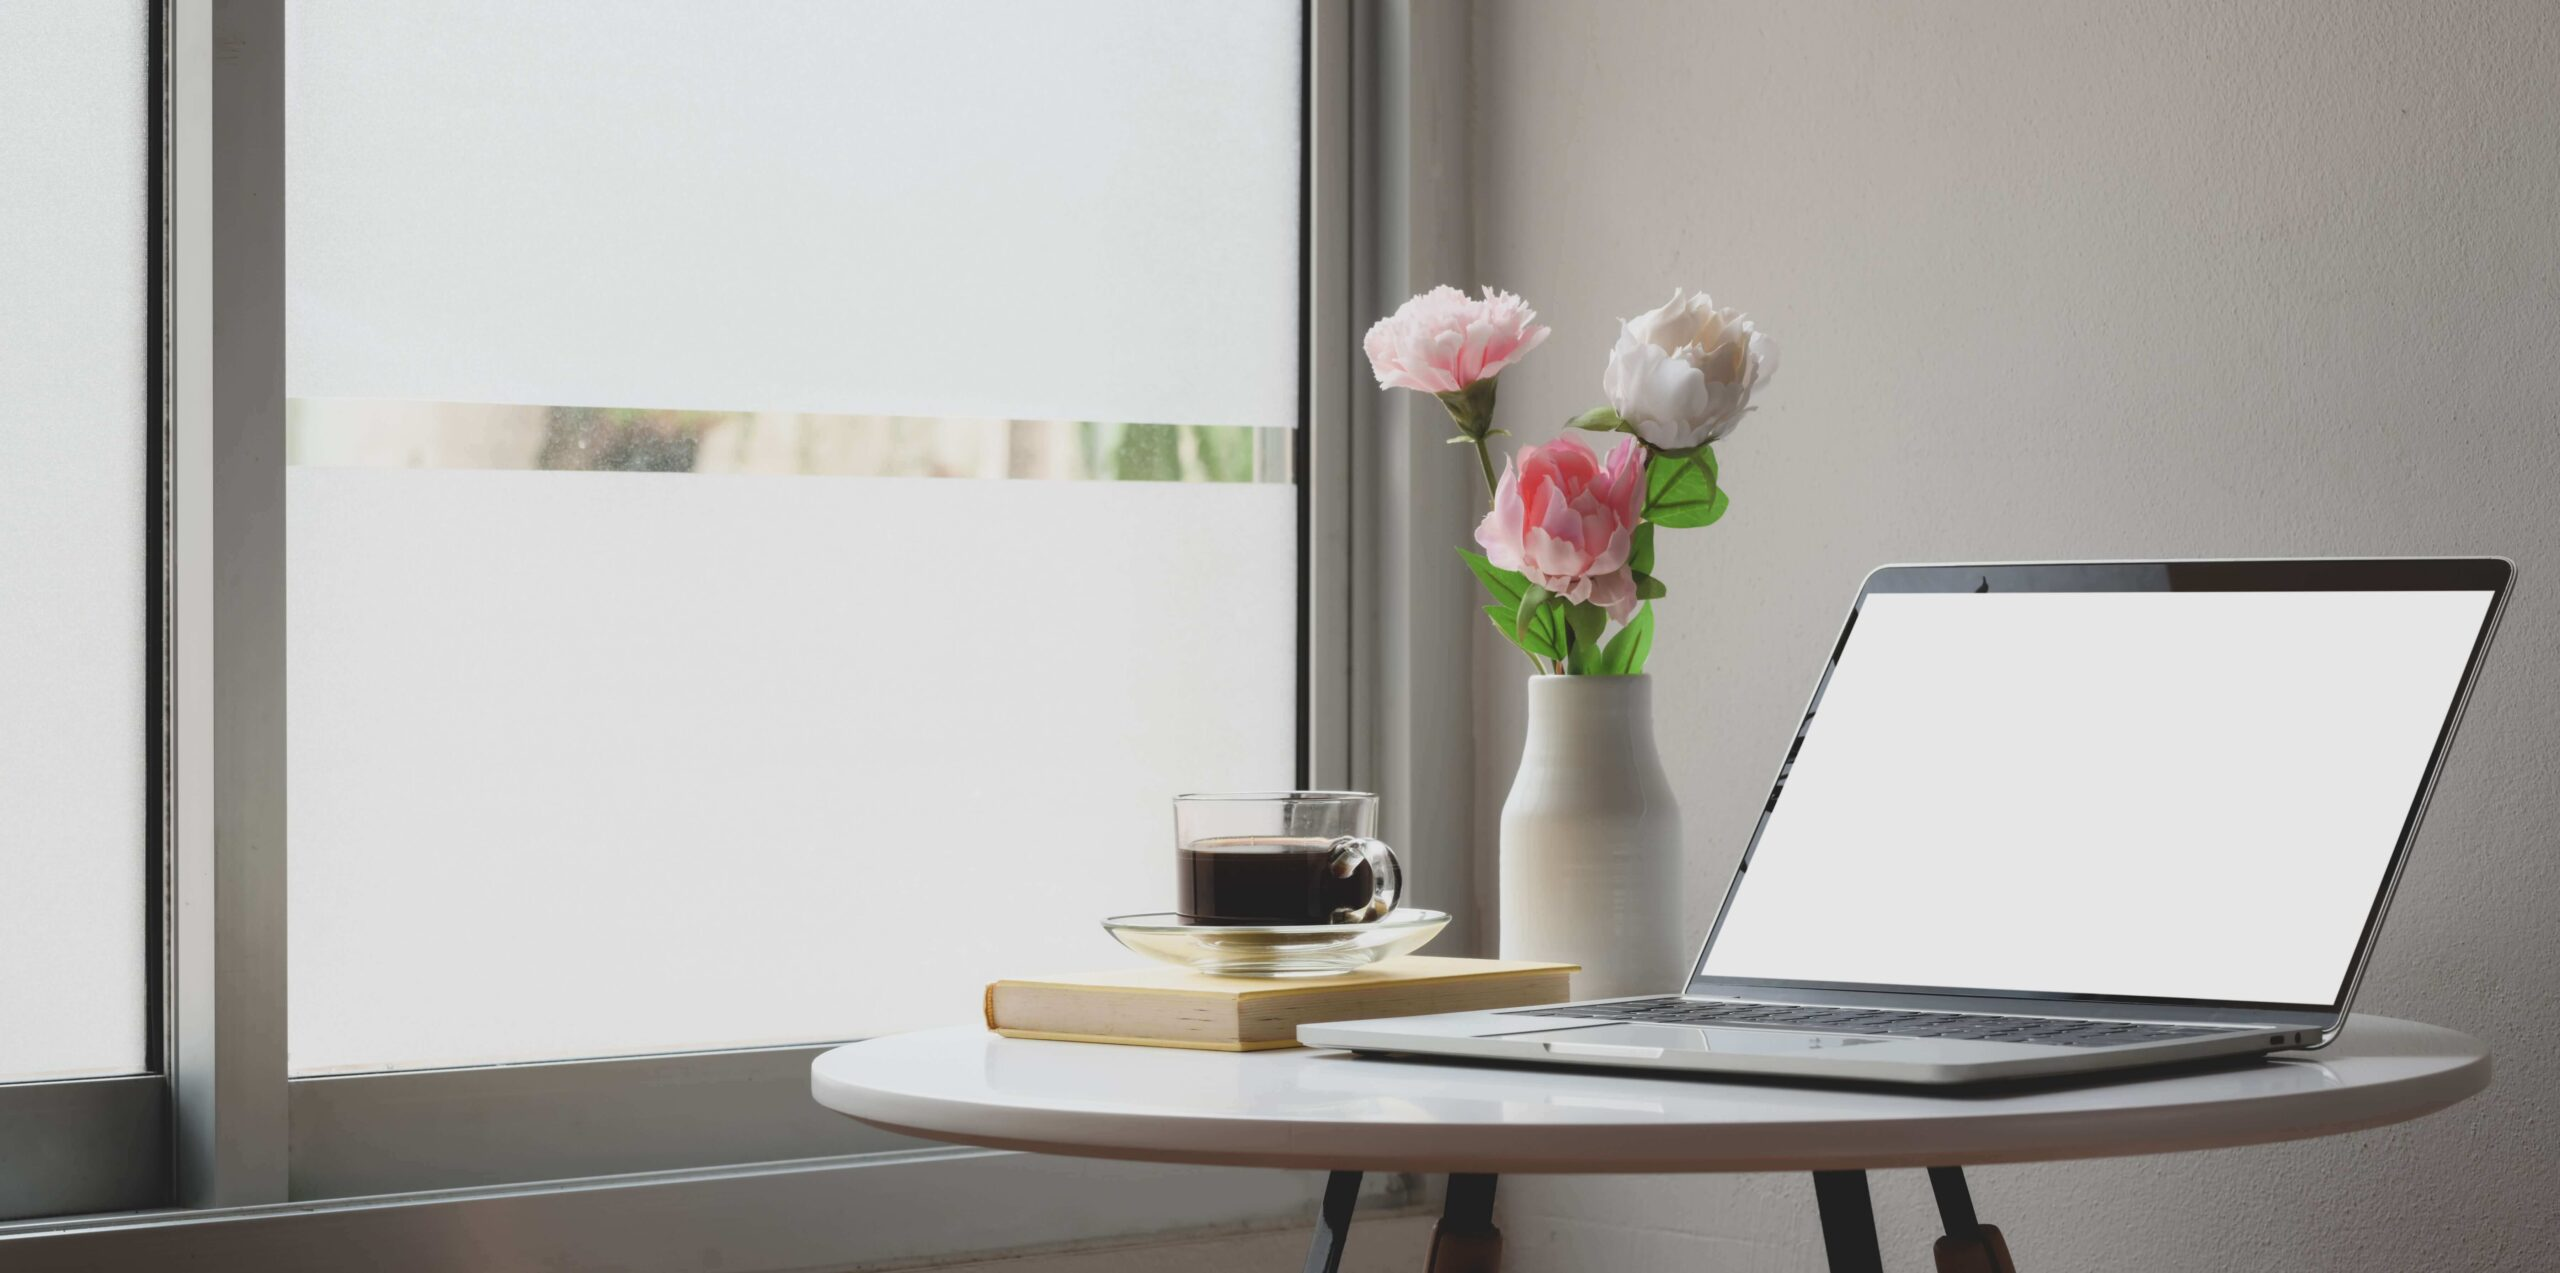 21 Constructive Activities to when Working From Home for College Students